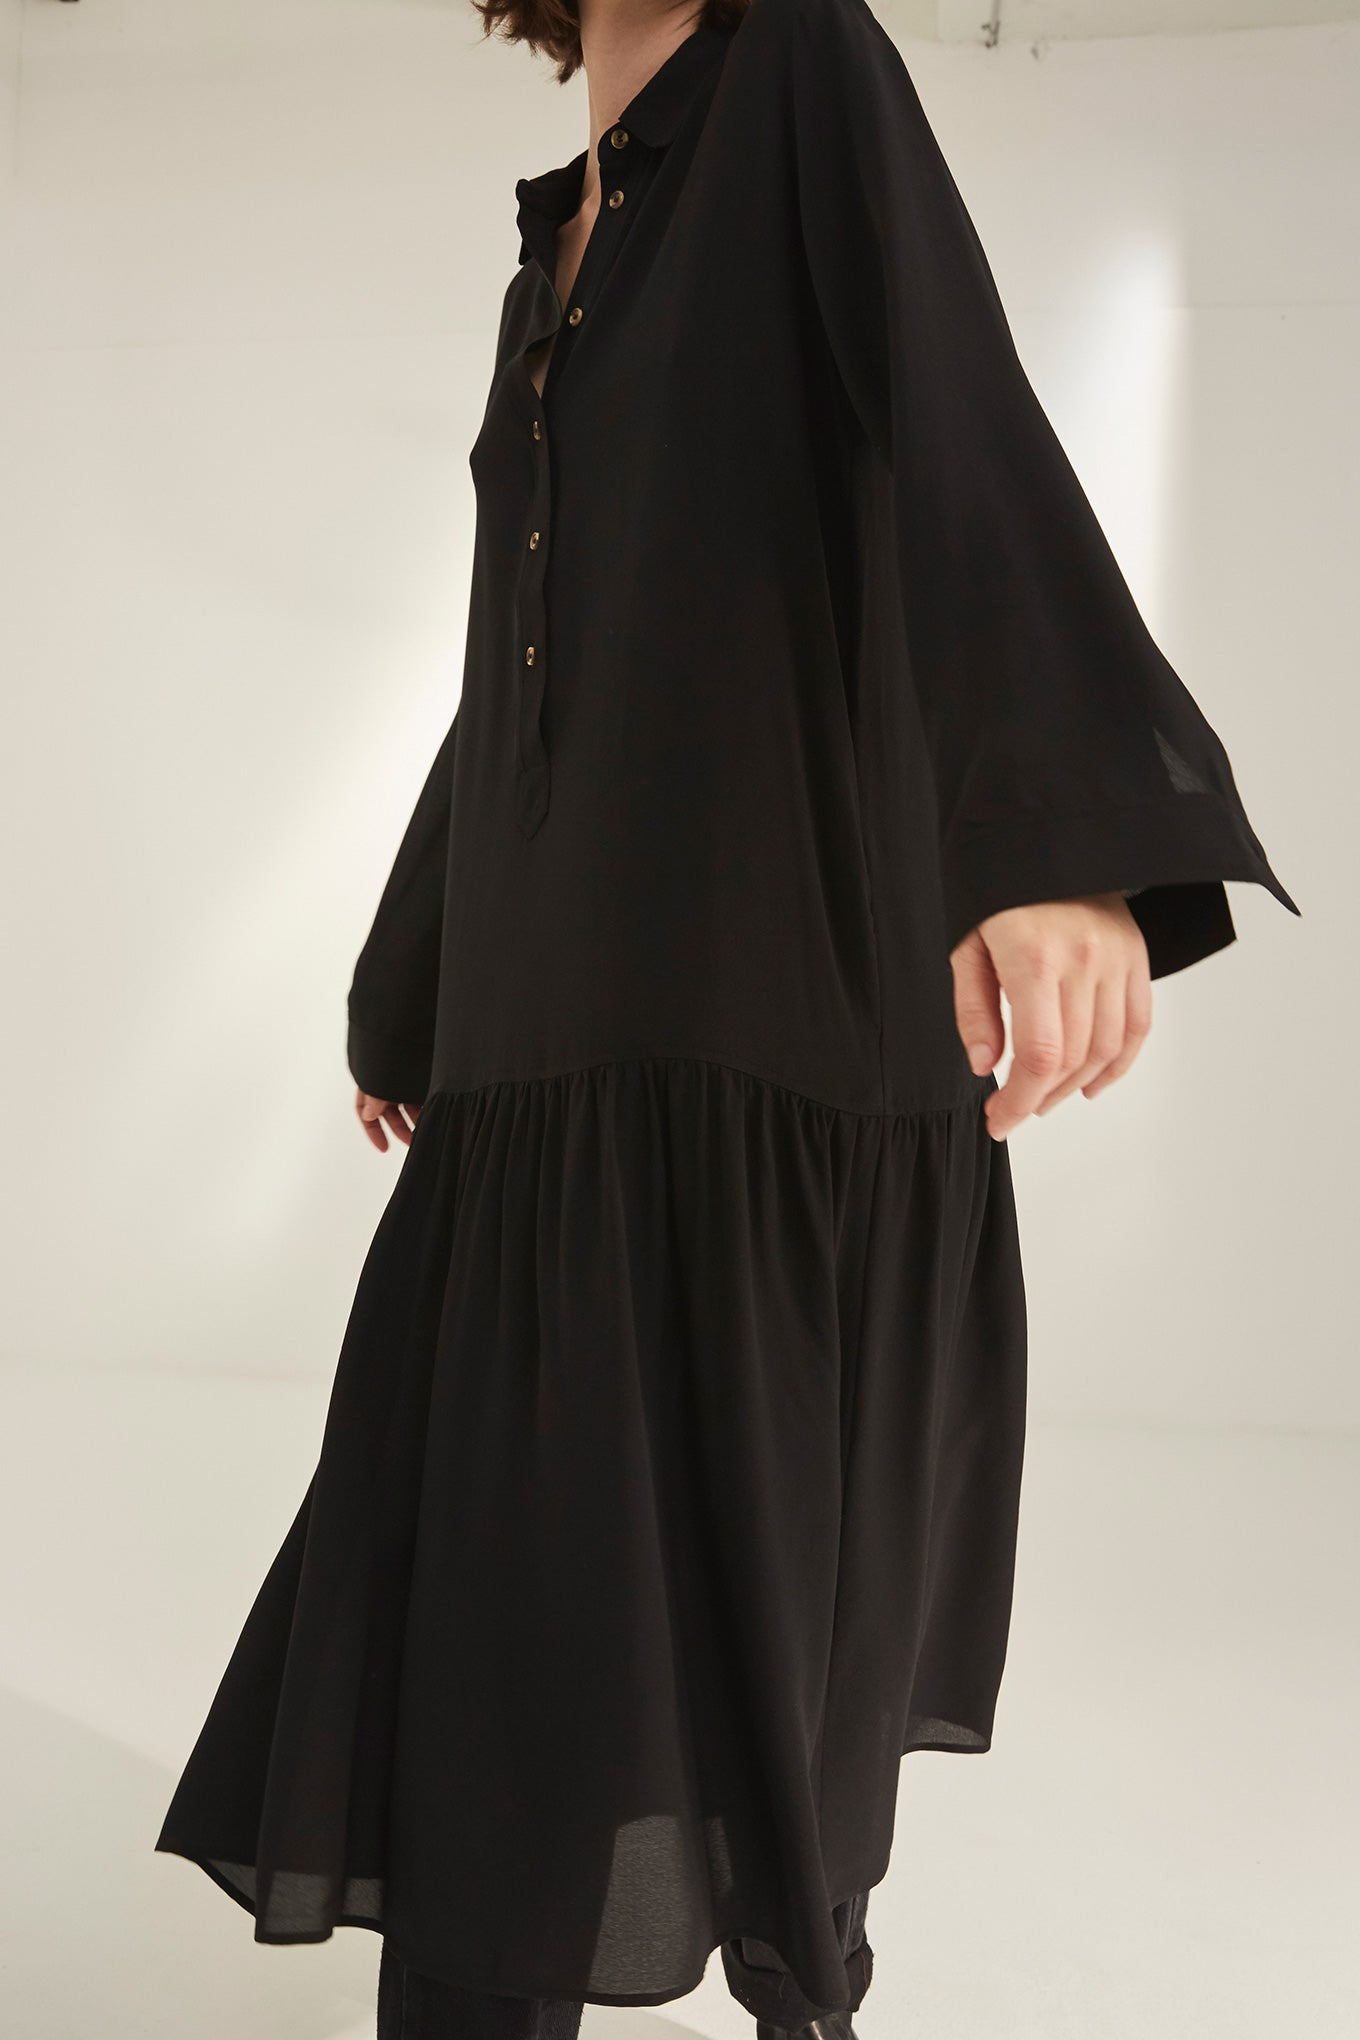 Eika Dress - Black